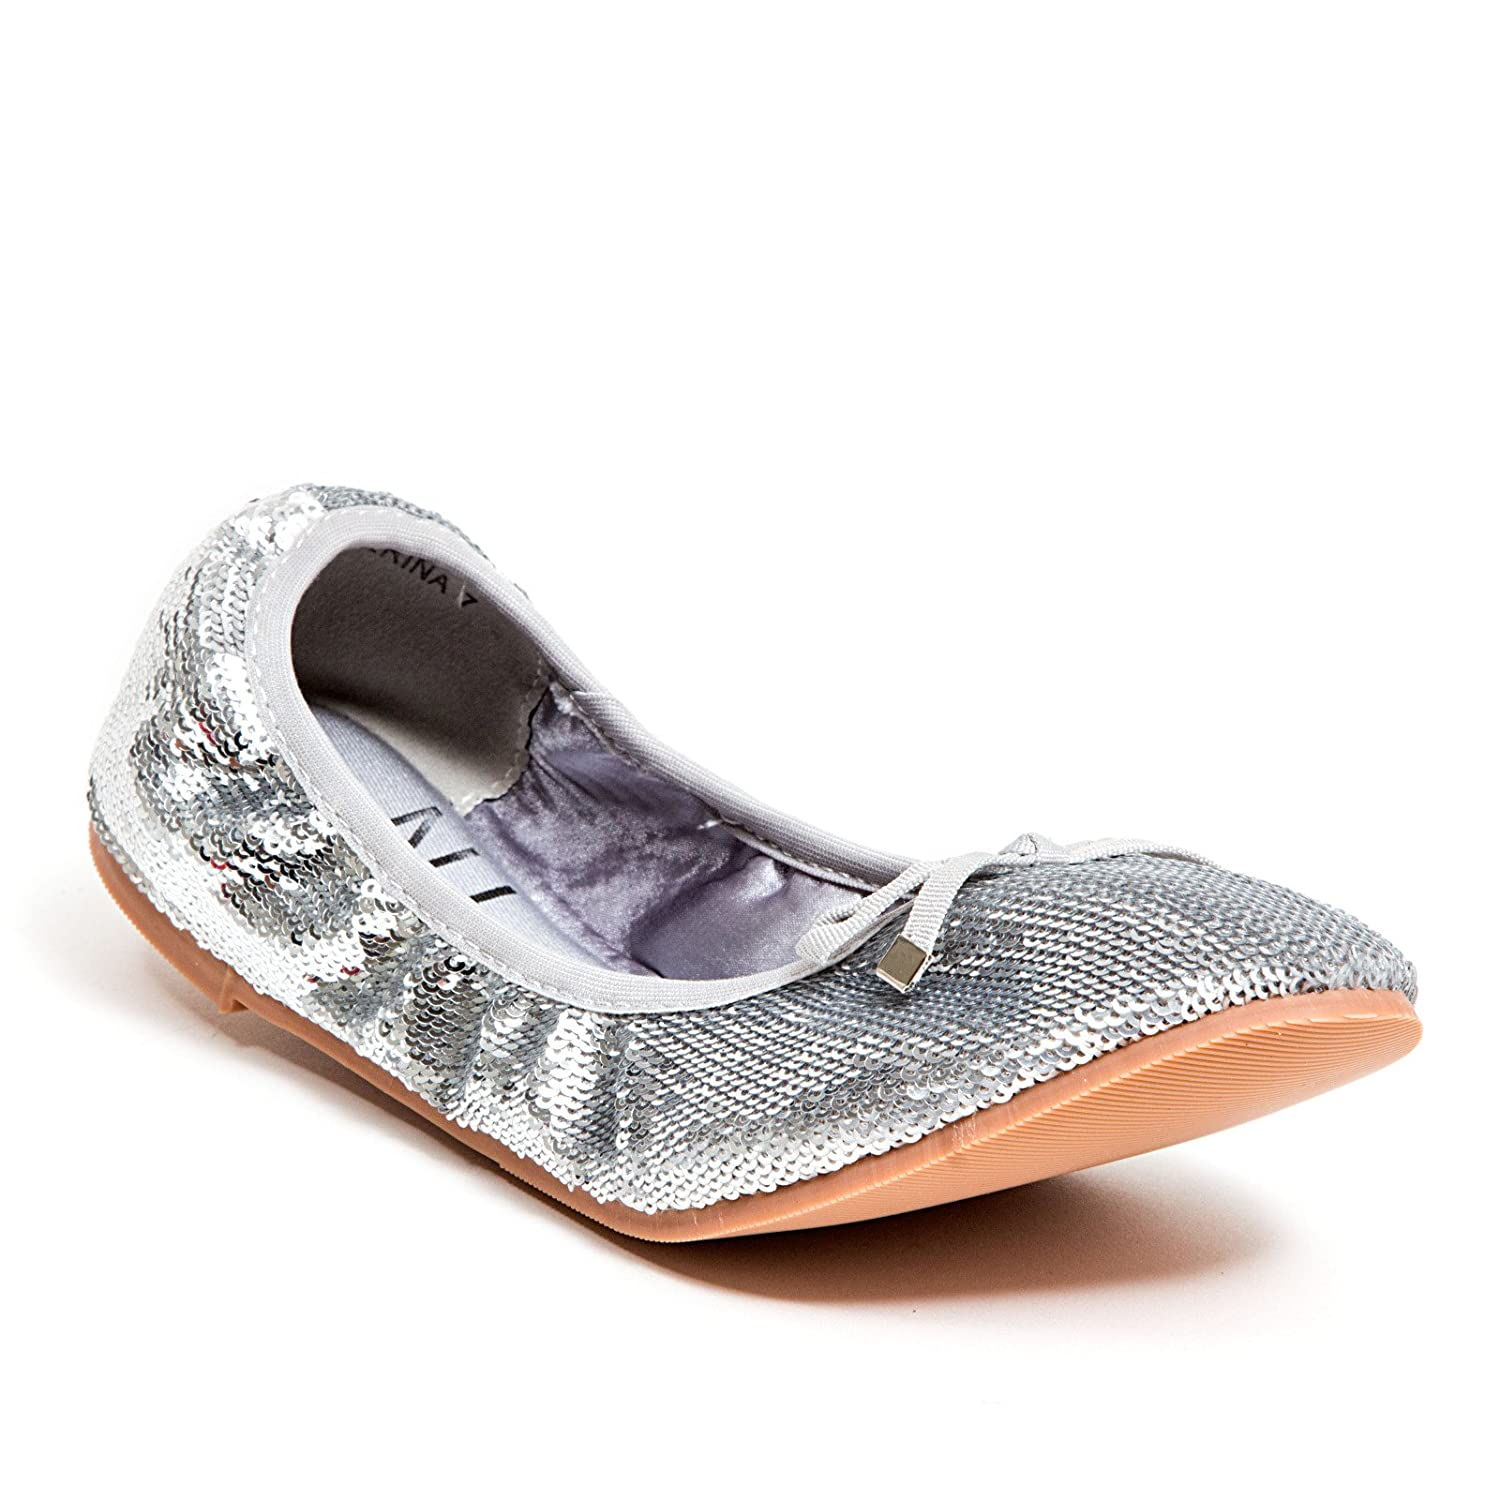 Lady Couture Ballet Flats with Bow Ninety Union Womens Shoes by Ballerina Silver 9